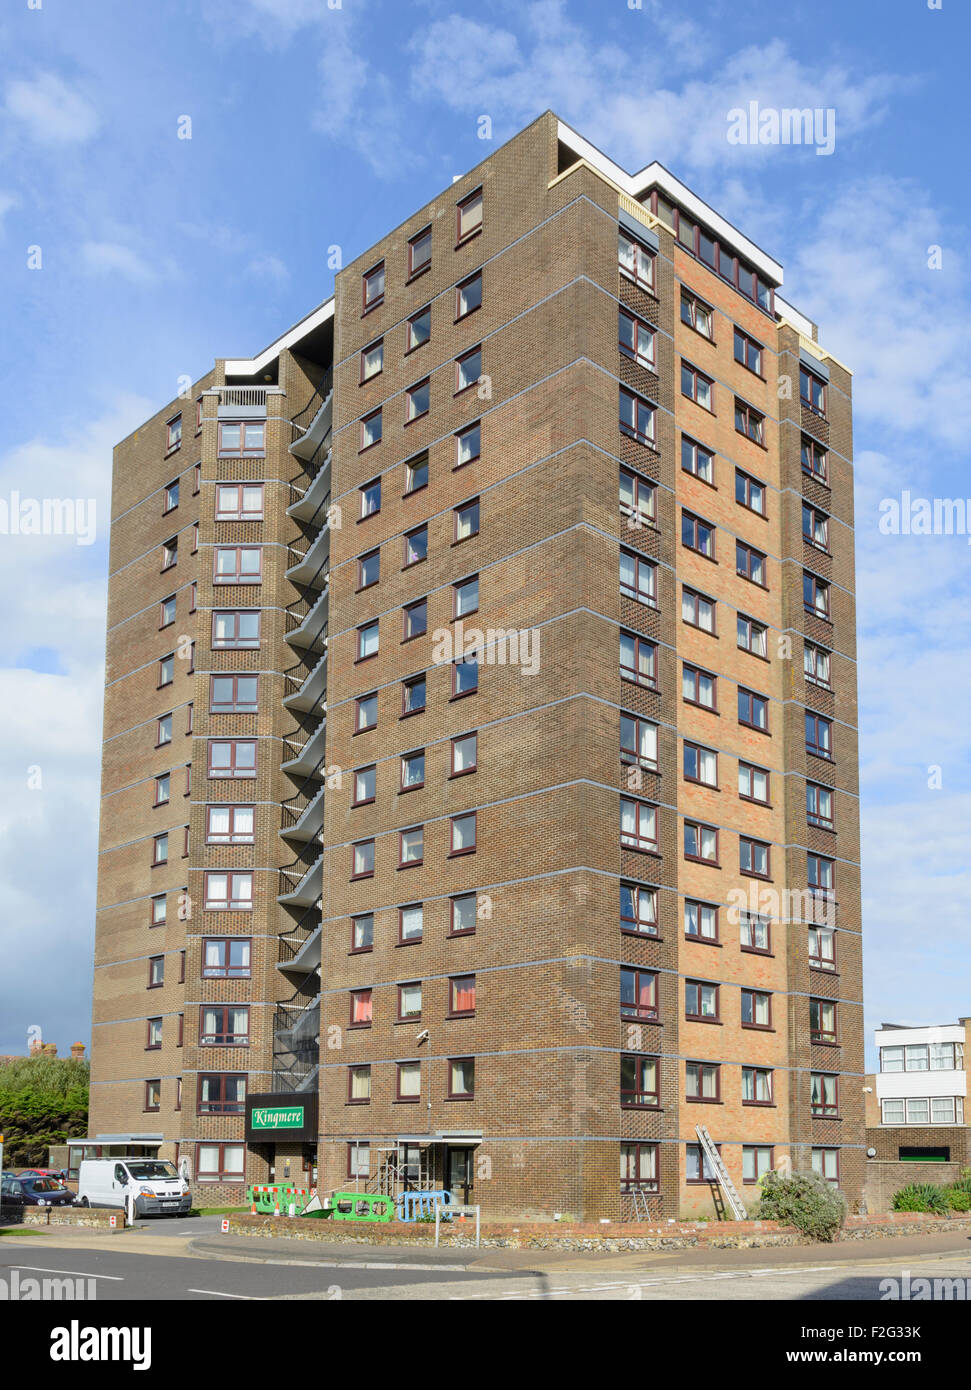 Kingmere Flats - Large residential tower block of flats in Littlehampton, West Sussex, England, UK. - Stock Image